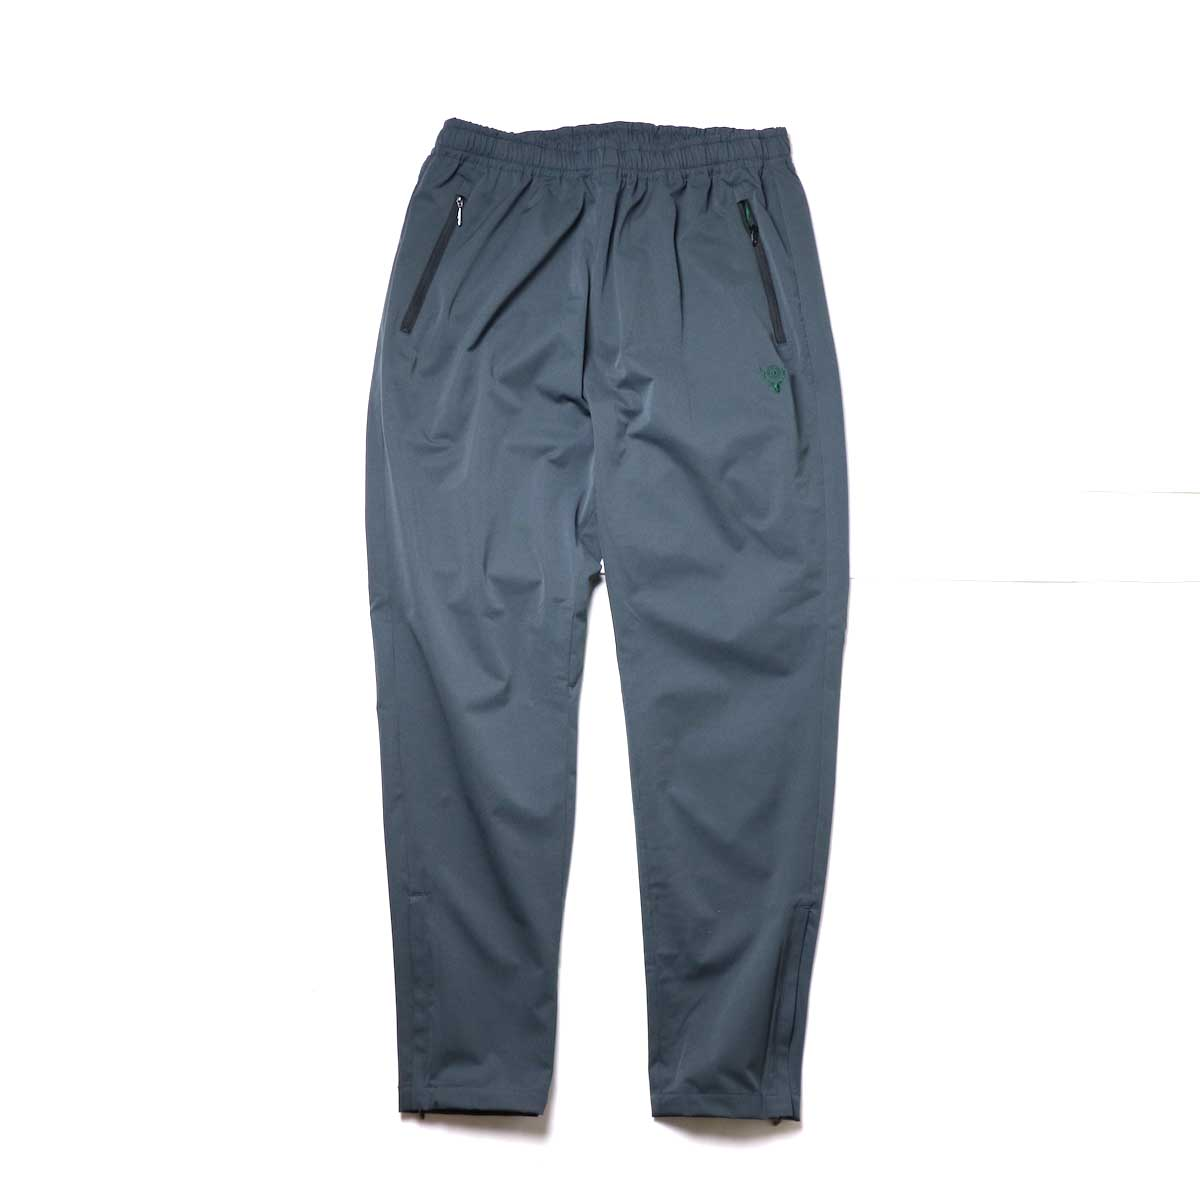 South2 West8 / Boulder Pant -Poly Stretch Twill (Charcoal)